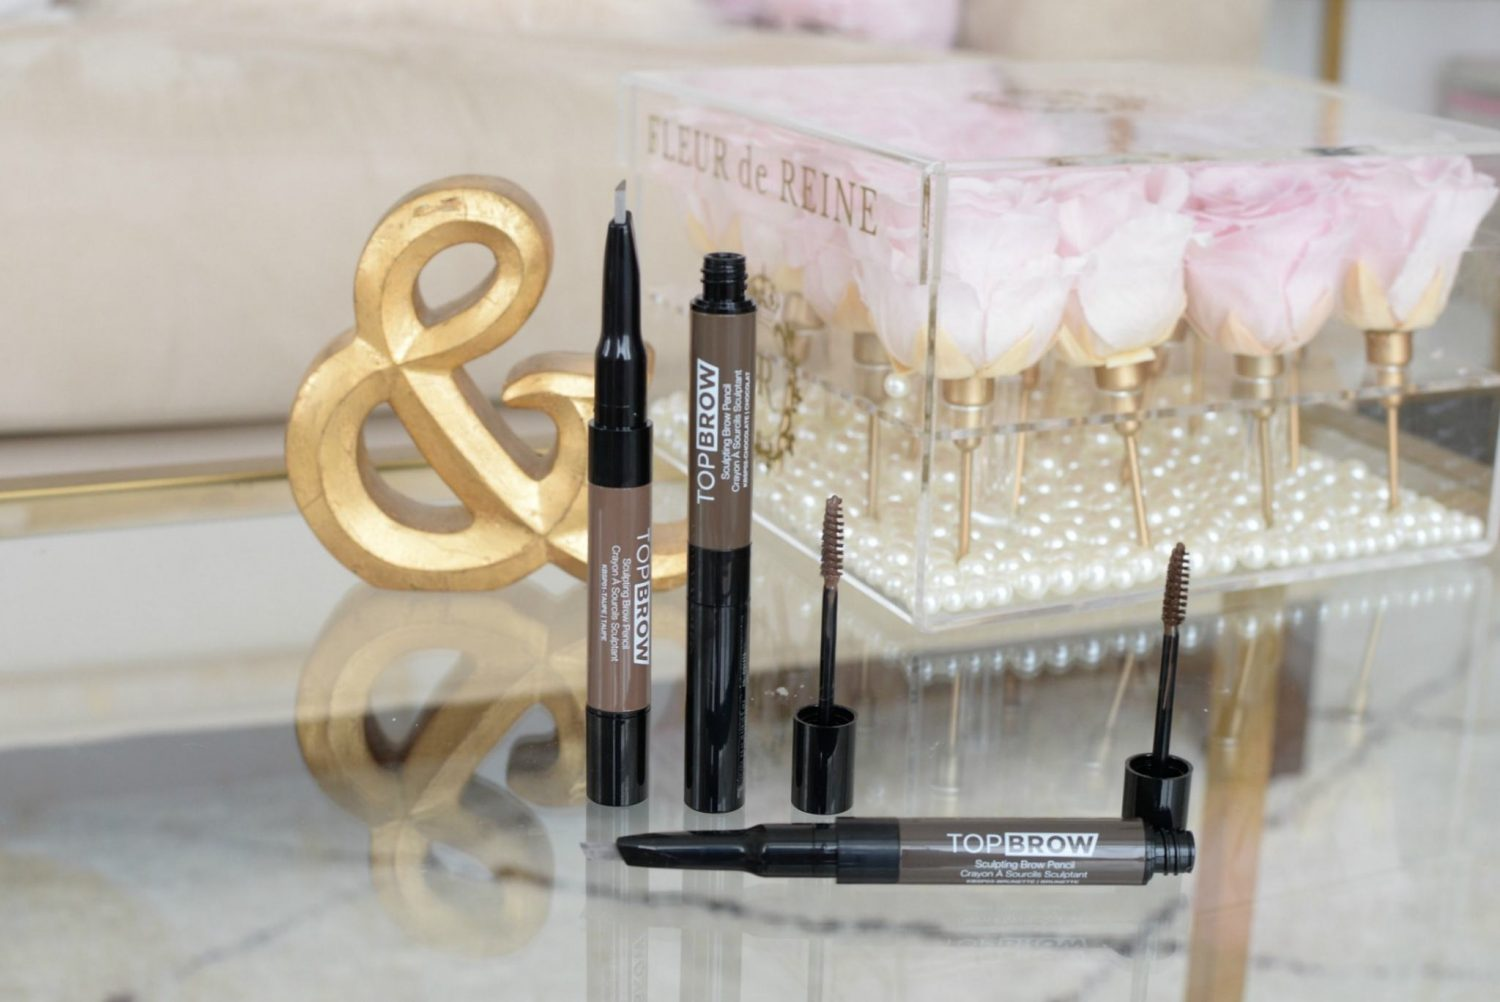 Top Brow Sculpting Pencil | The Pink Millennial